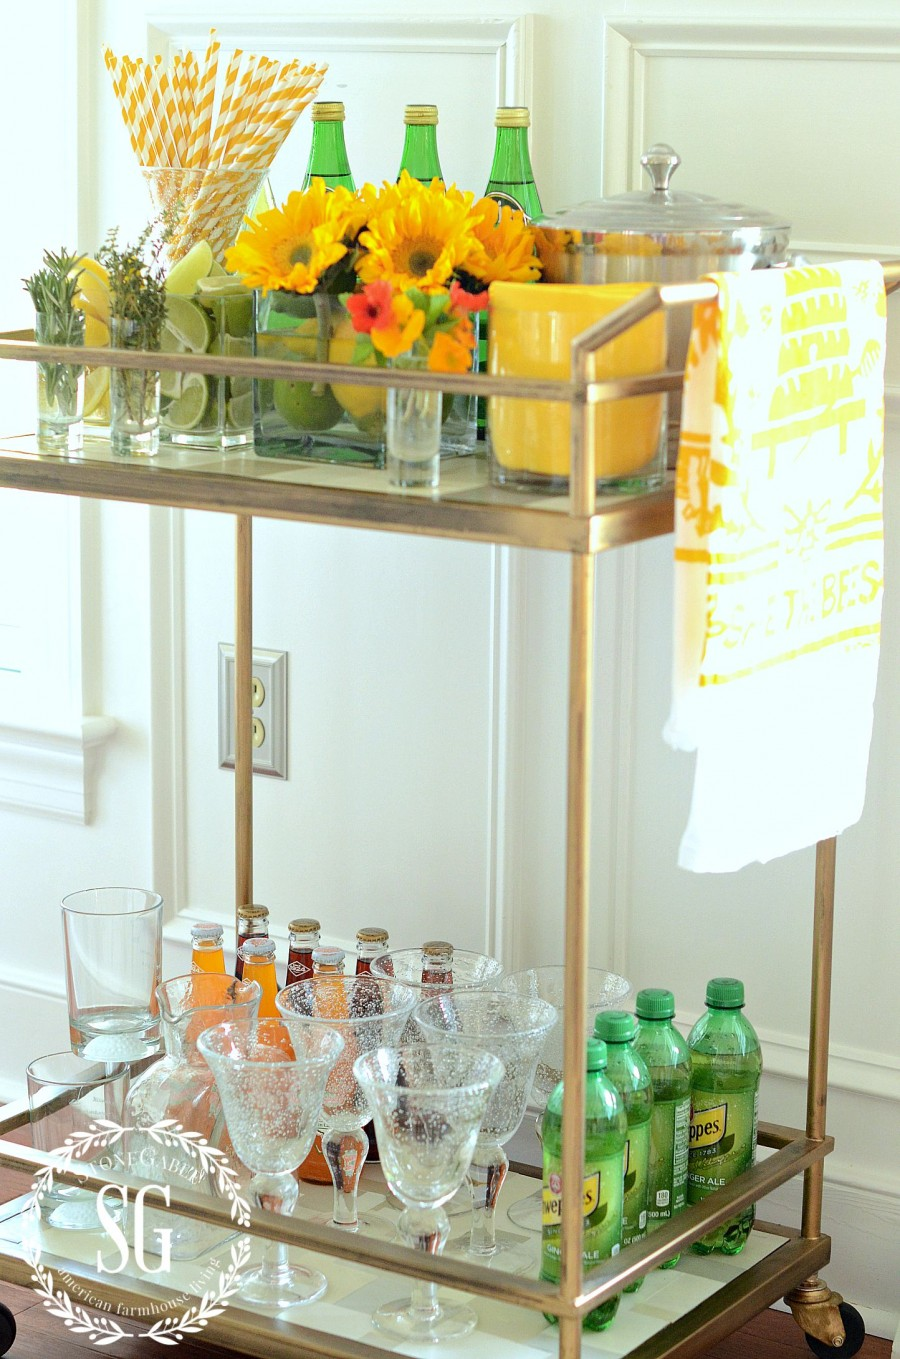 Fun Fabulous Non Alcoholic Bar Cart And Herb Citrus Mocktail Recipes Stonegable